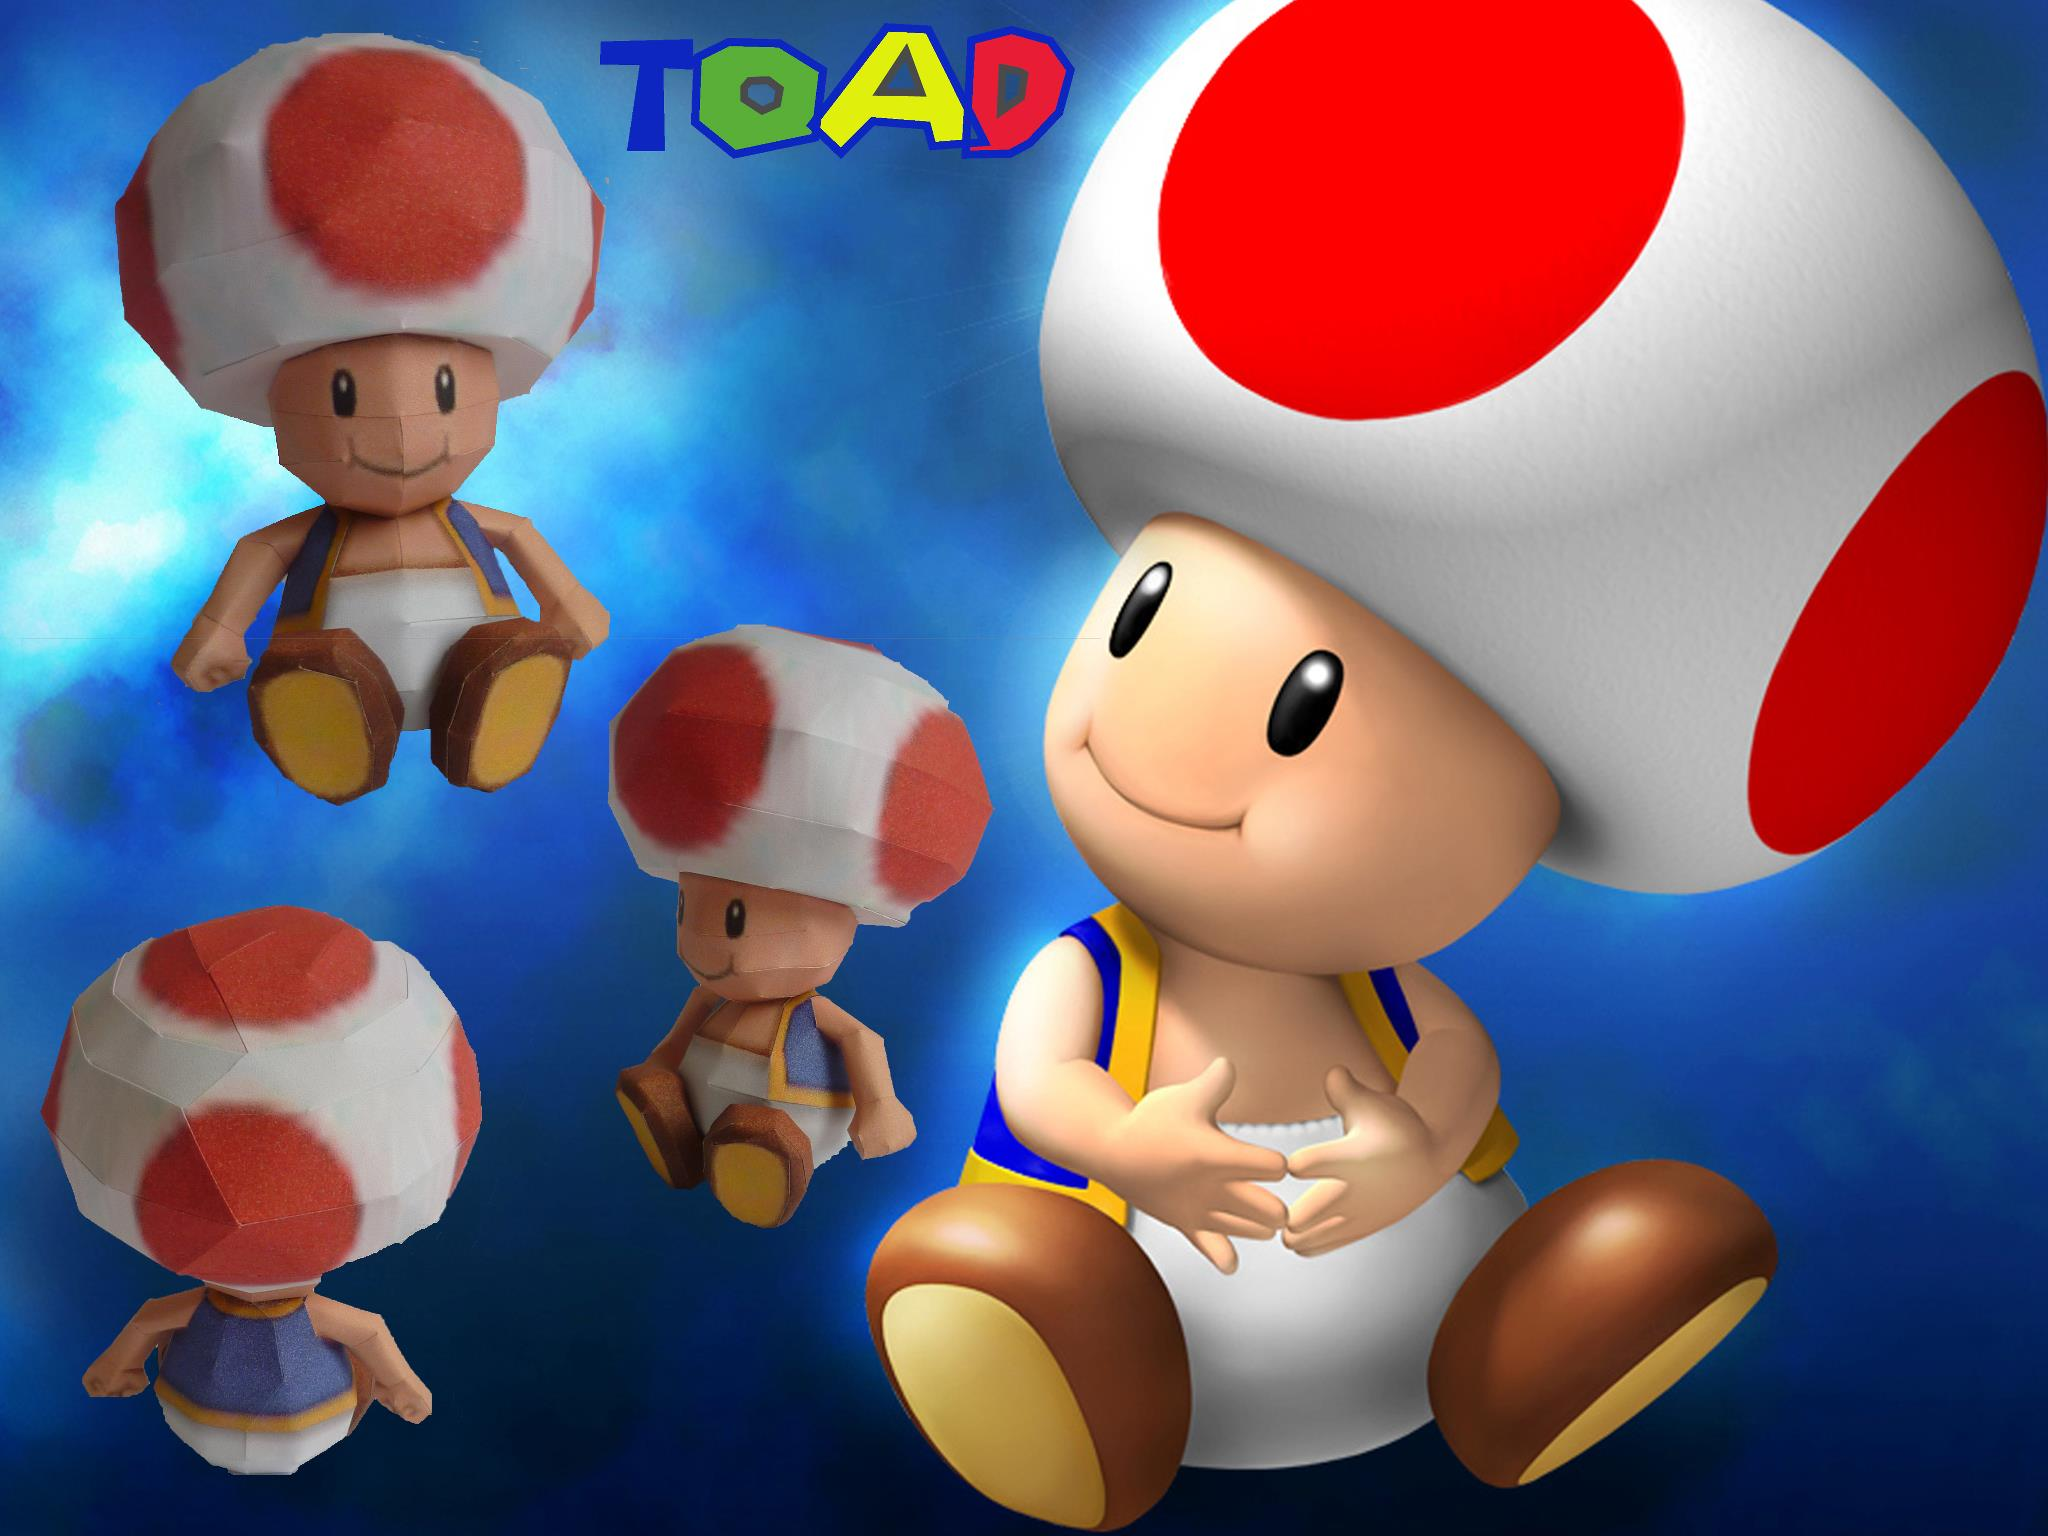 Toad papercraft by dodoman75